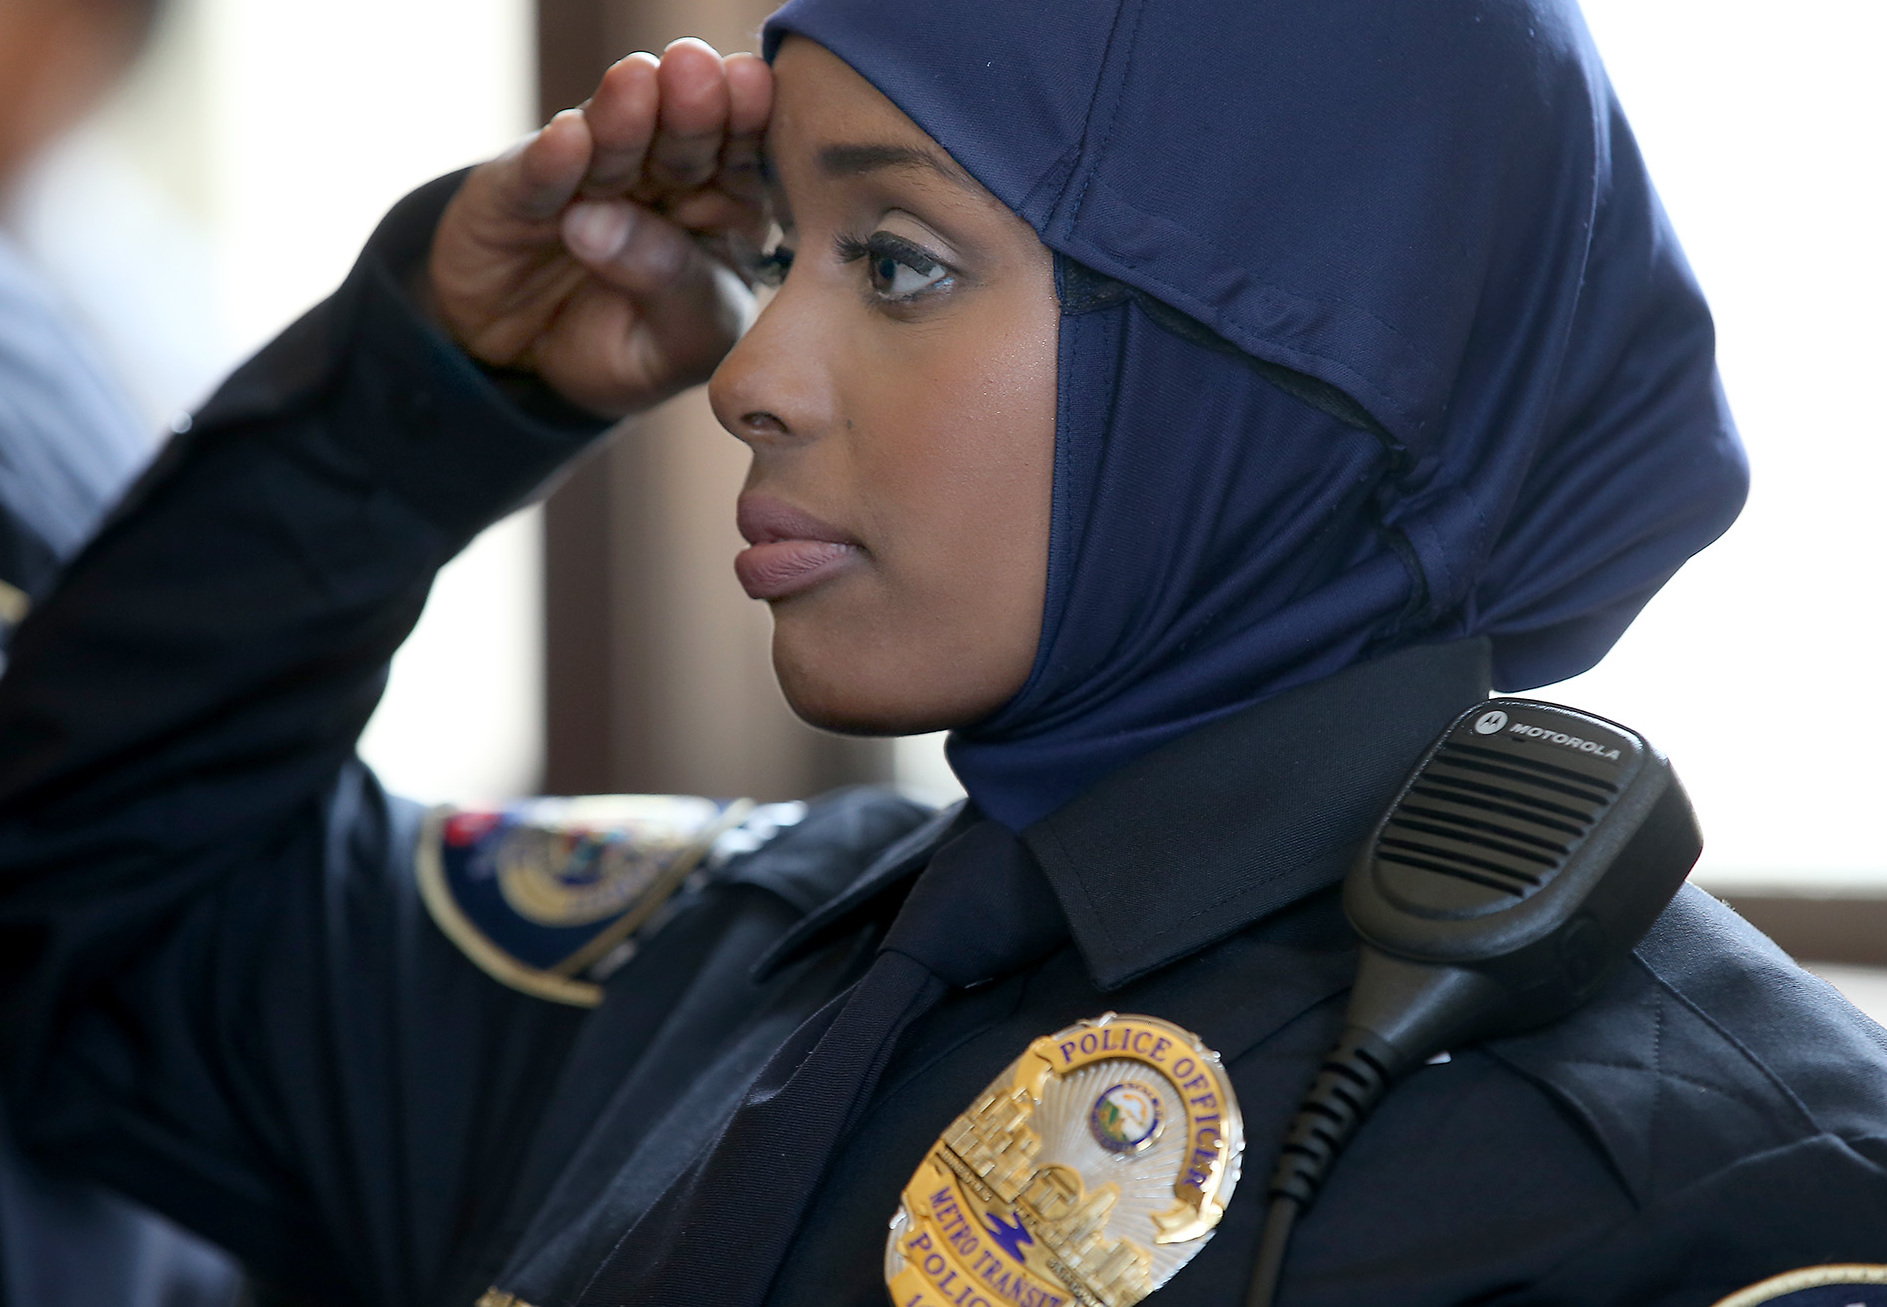 osceola county muslim single women Kenansville — the haines city woman who died as the result of a single-vehicle accident friday night has been identified the florida highway patrol reported carey fowler, 45, was killed.